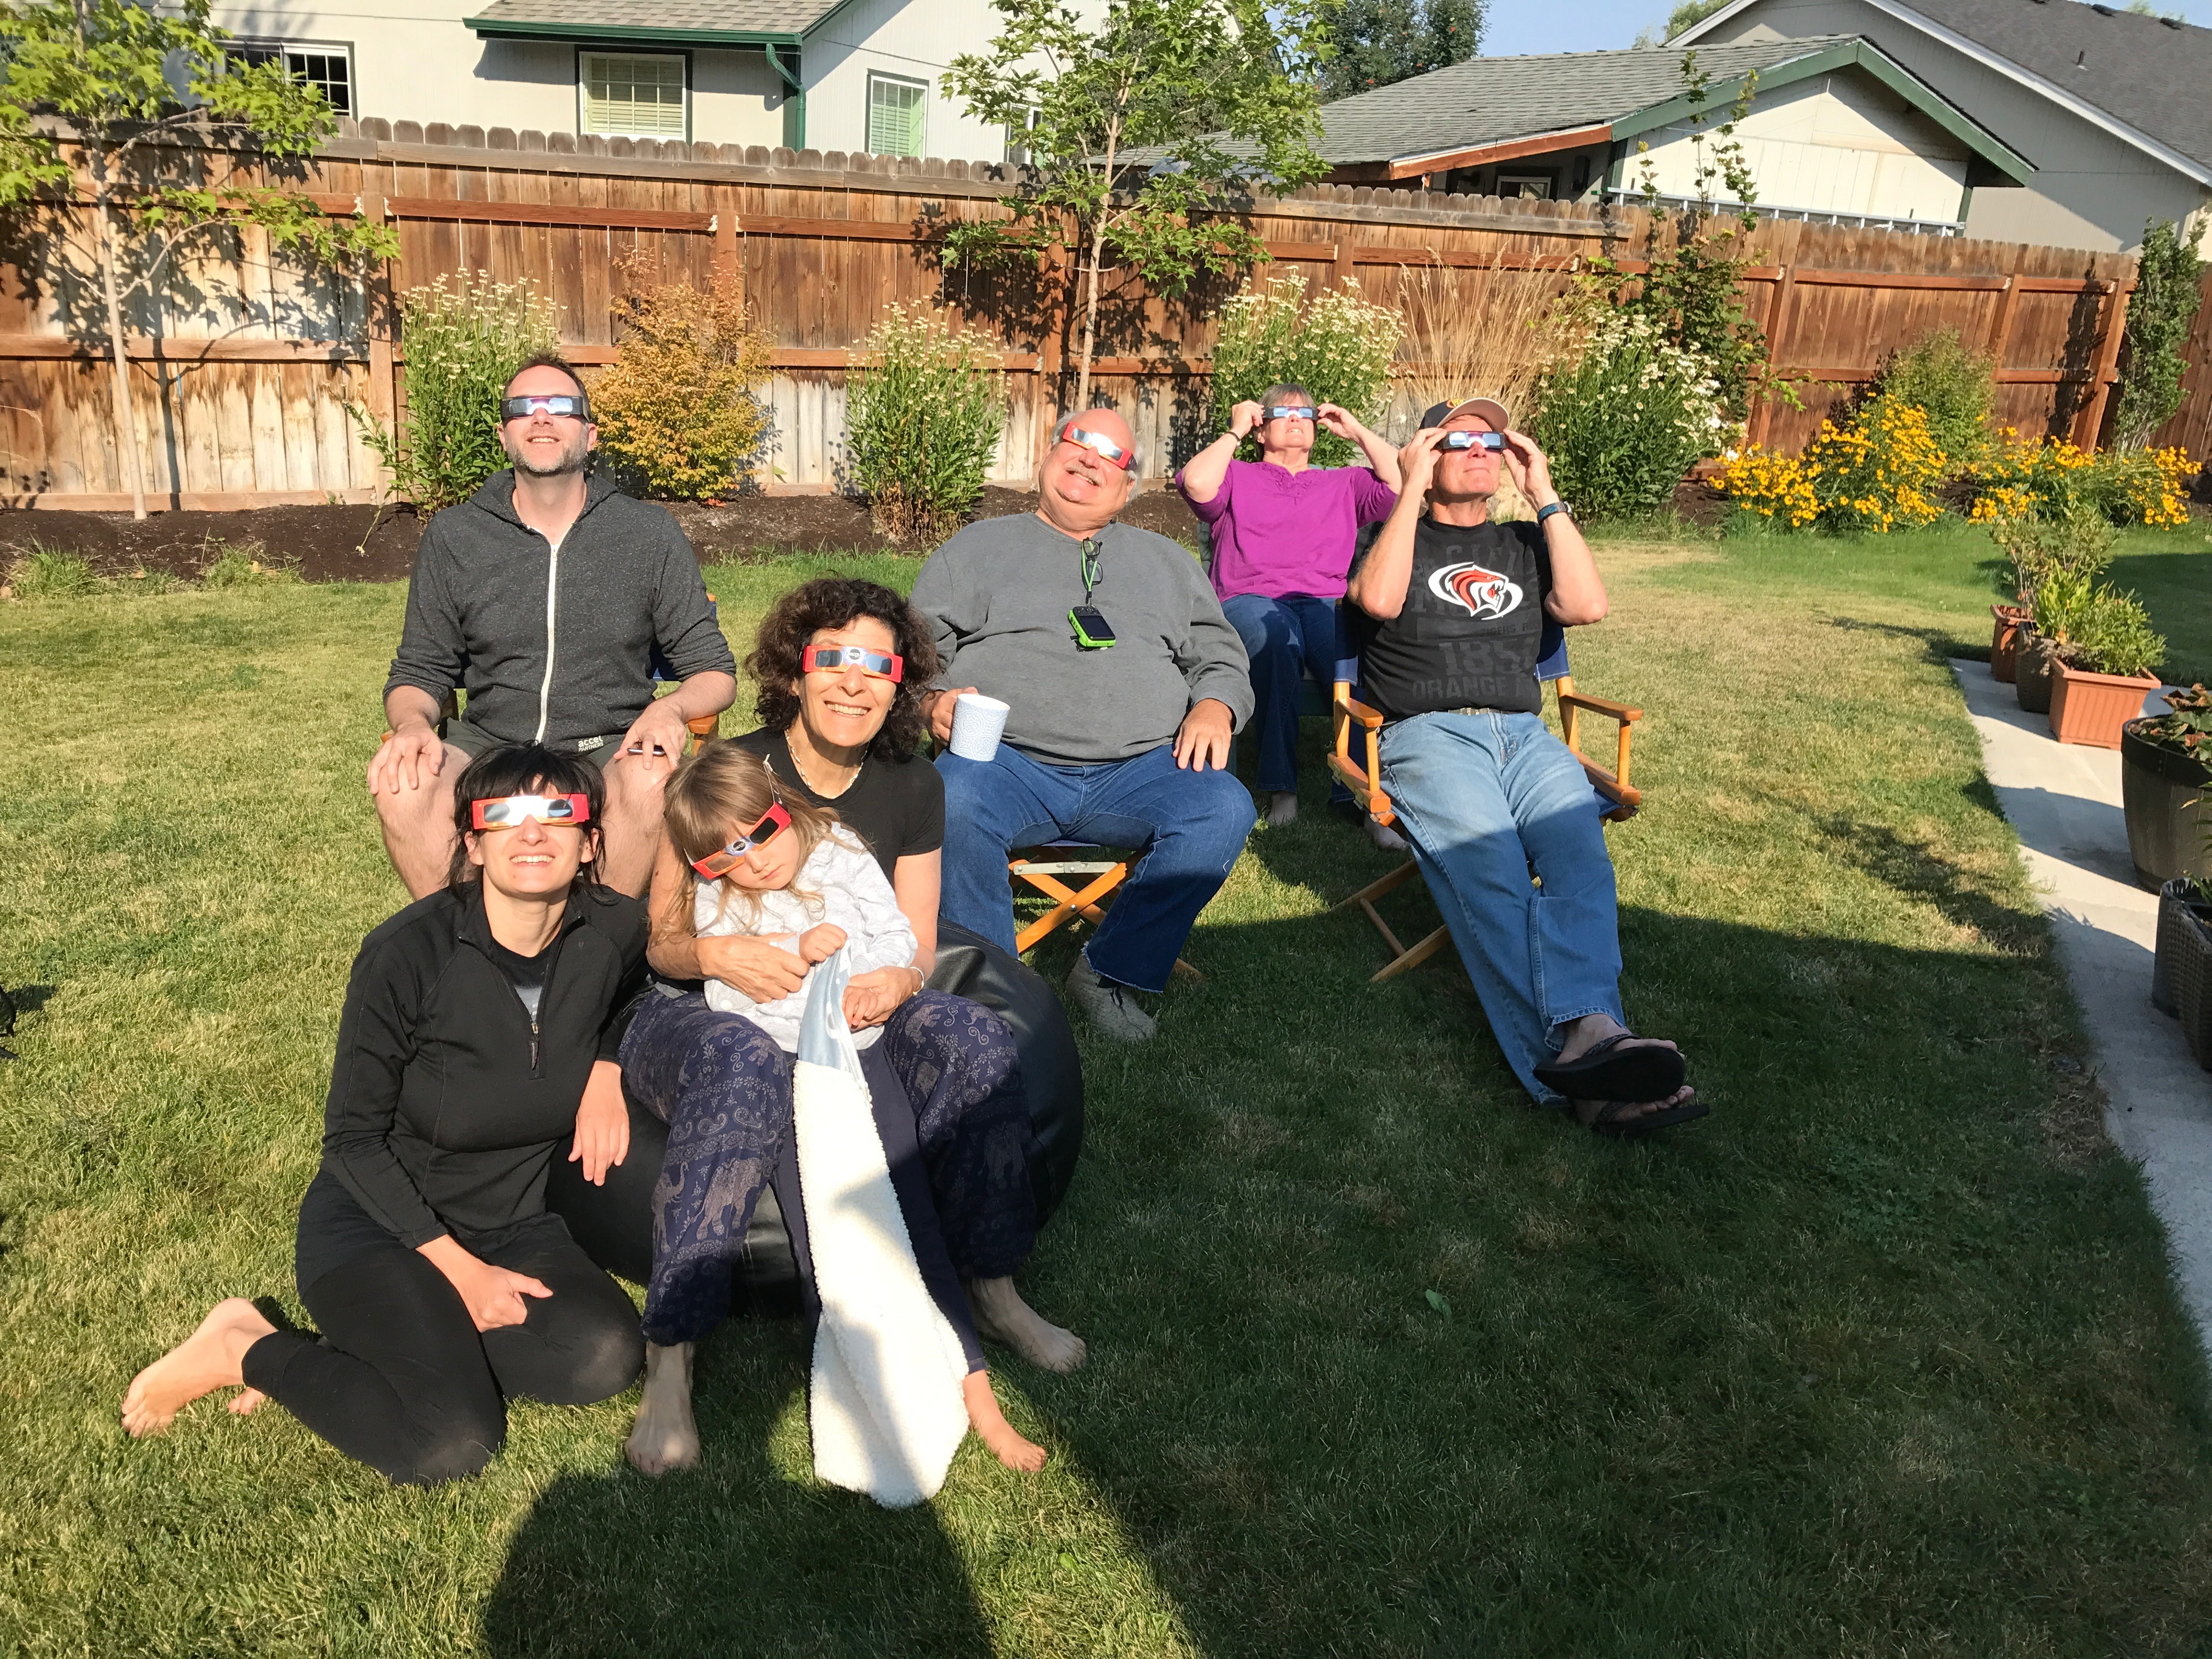 Robert Rosner and family in Oregon